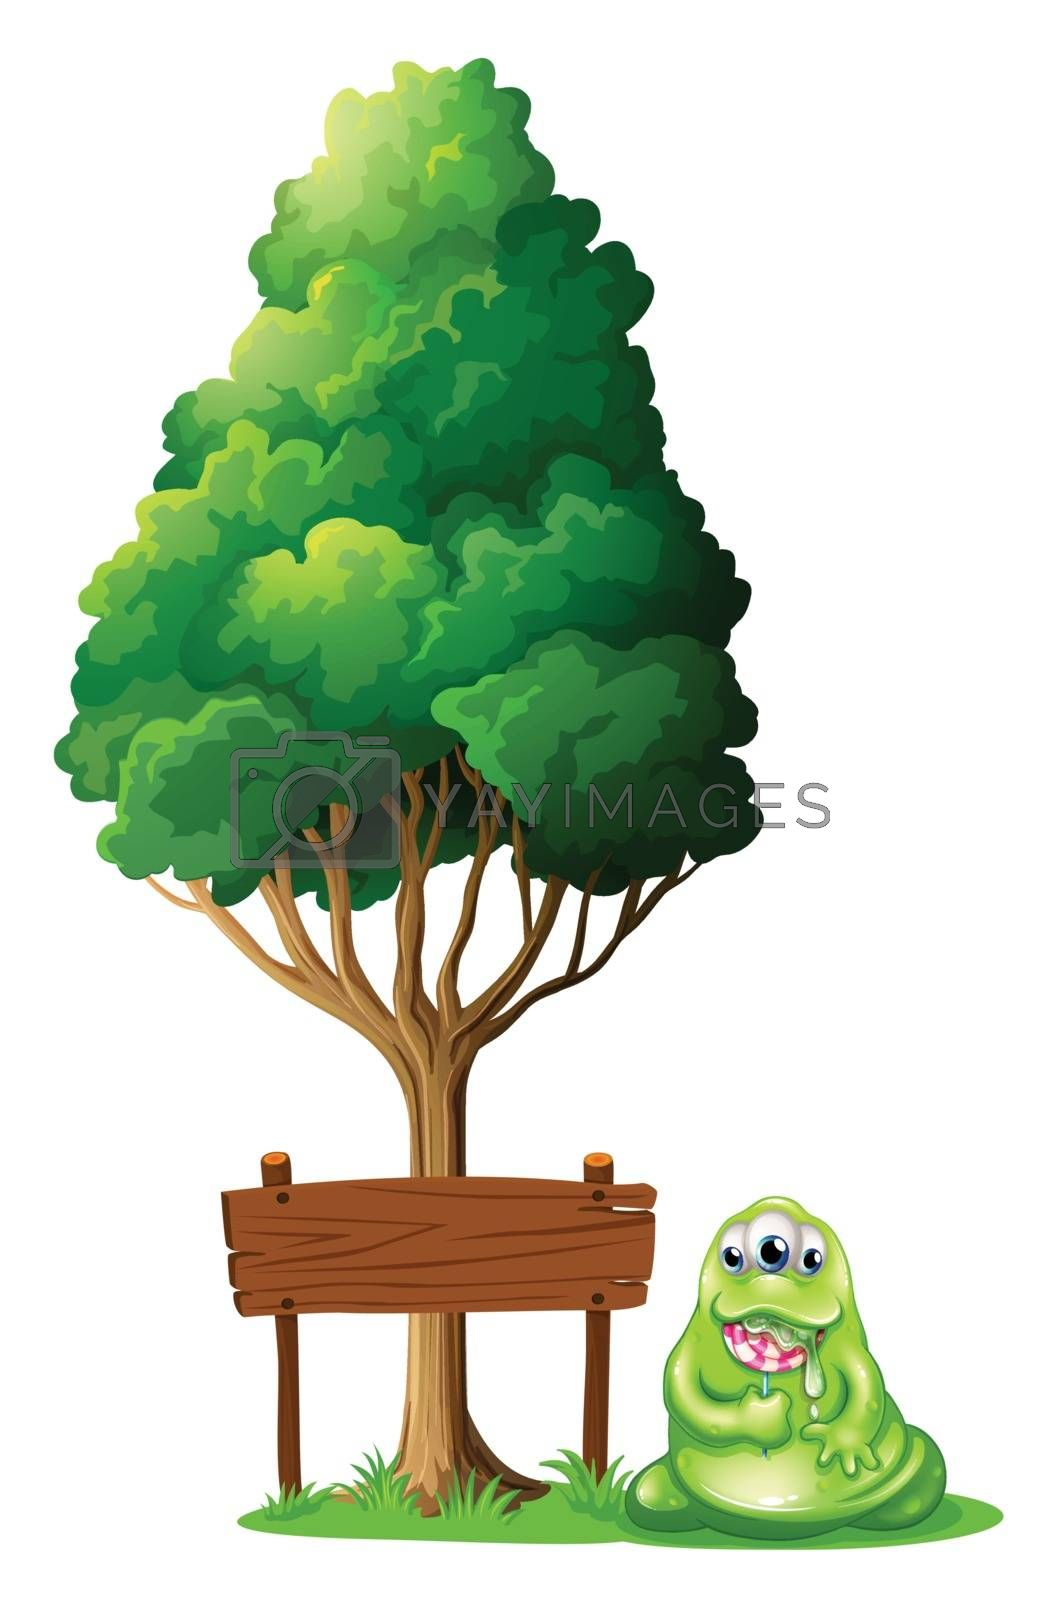 Illustration of a monster beside the empty wooden signboard under the tree on a white background